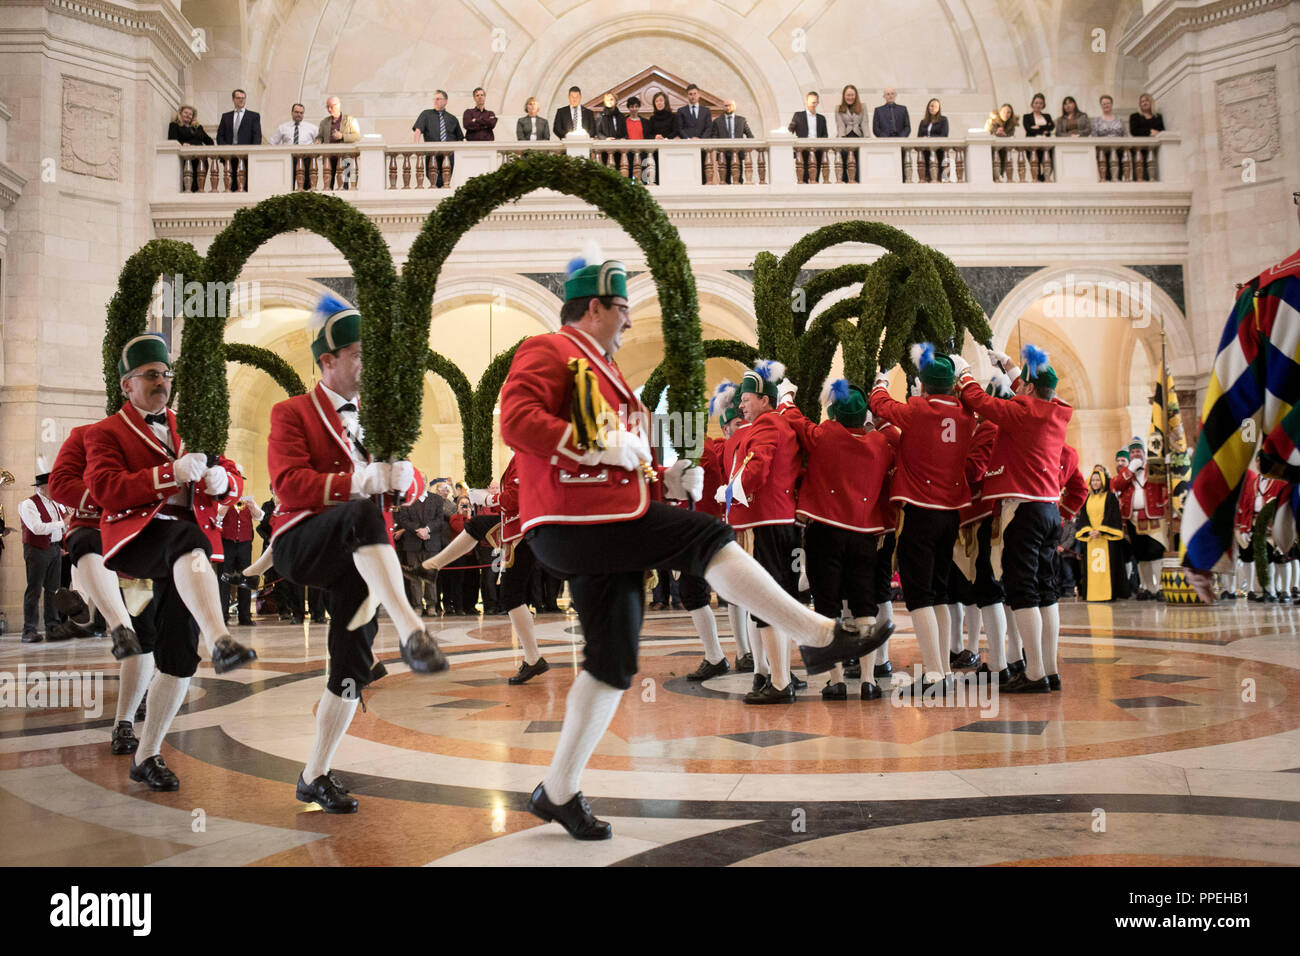 The Muenchner Schaeffler open the extraordinary season on the 500th birthday of the Schaefflertanz (Copper's Dance) with a dance interlude in the Kuppelsaal of the Bavarian State Chancellery. - Stock Image